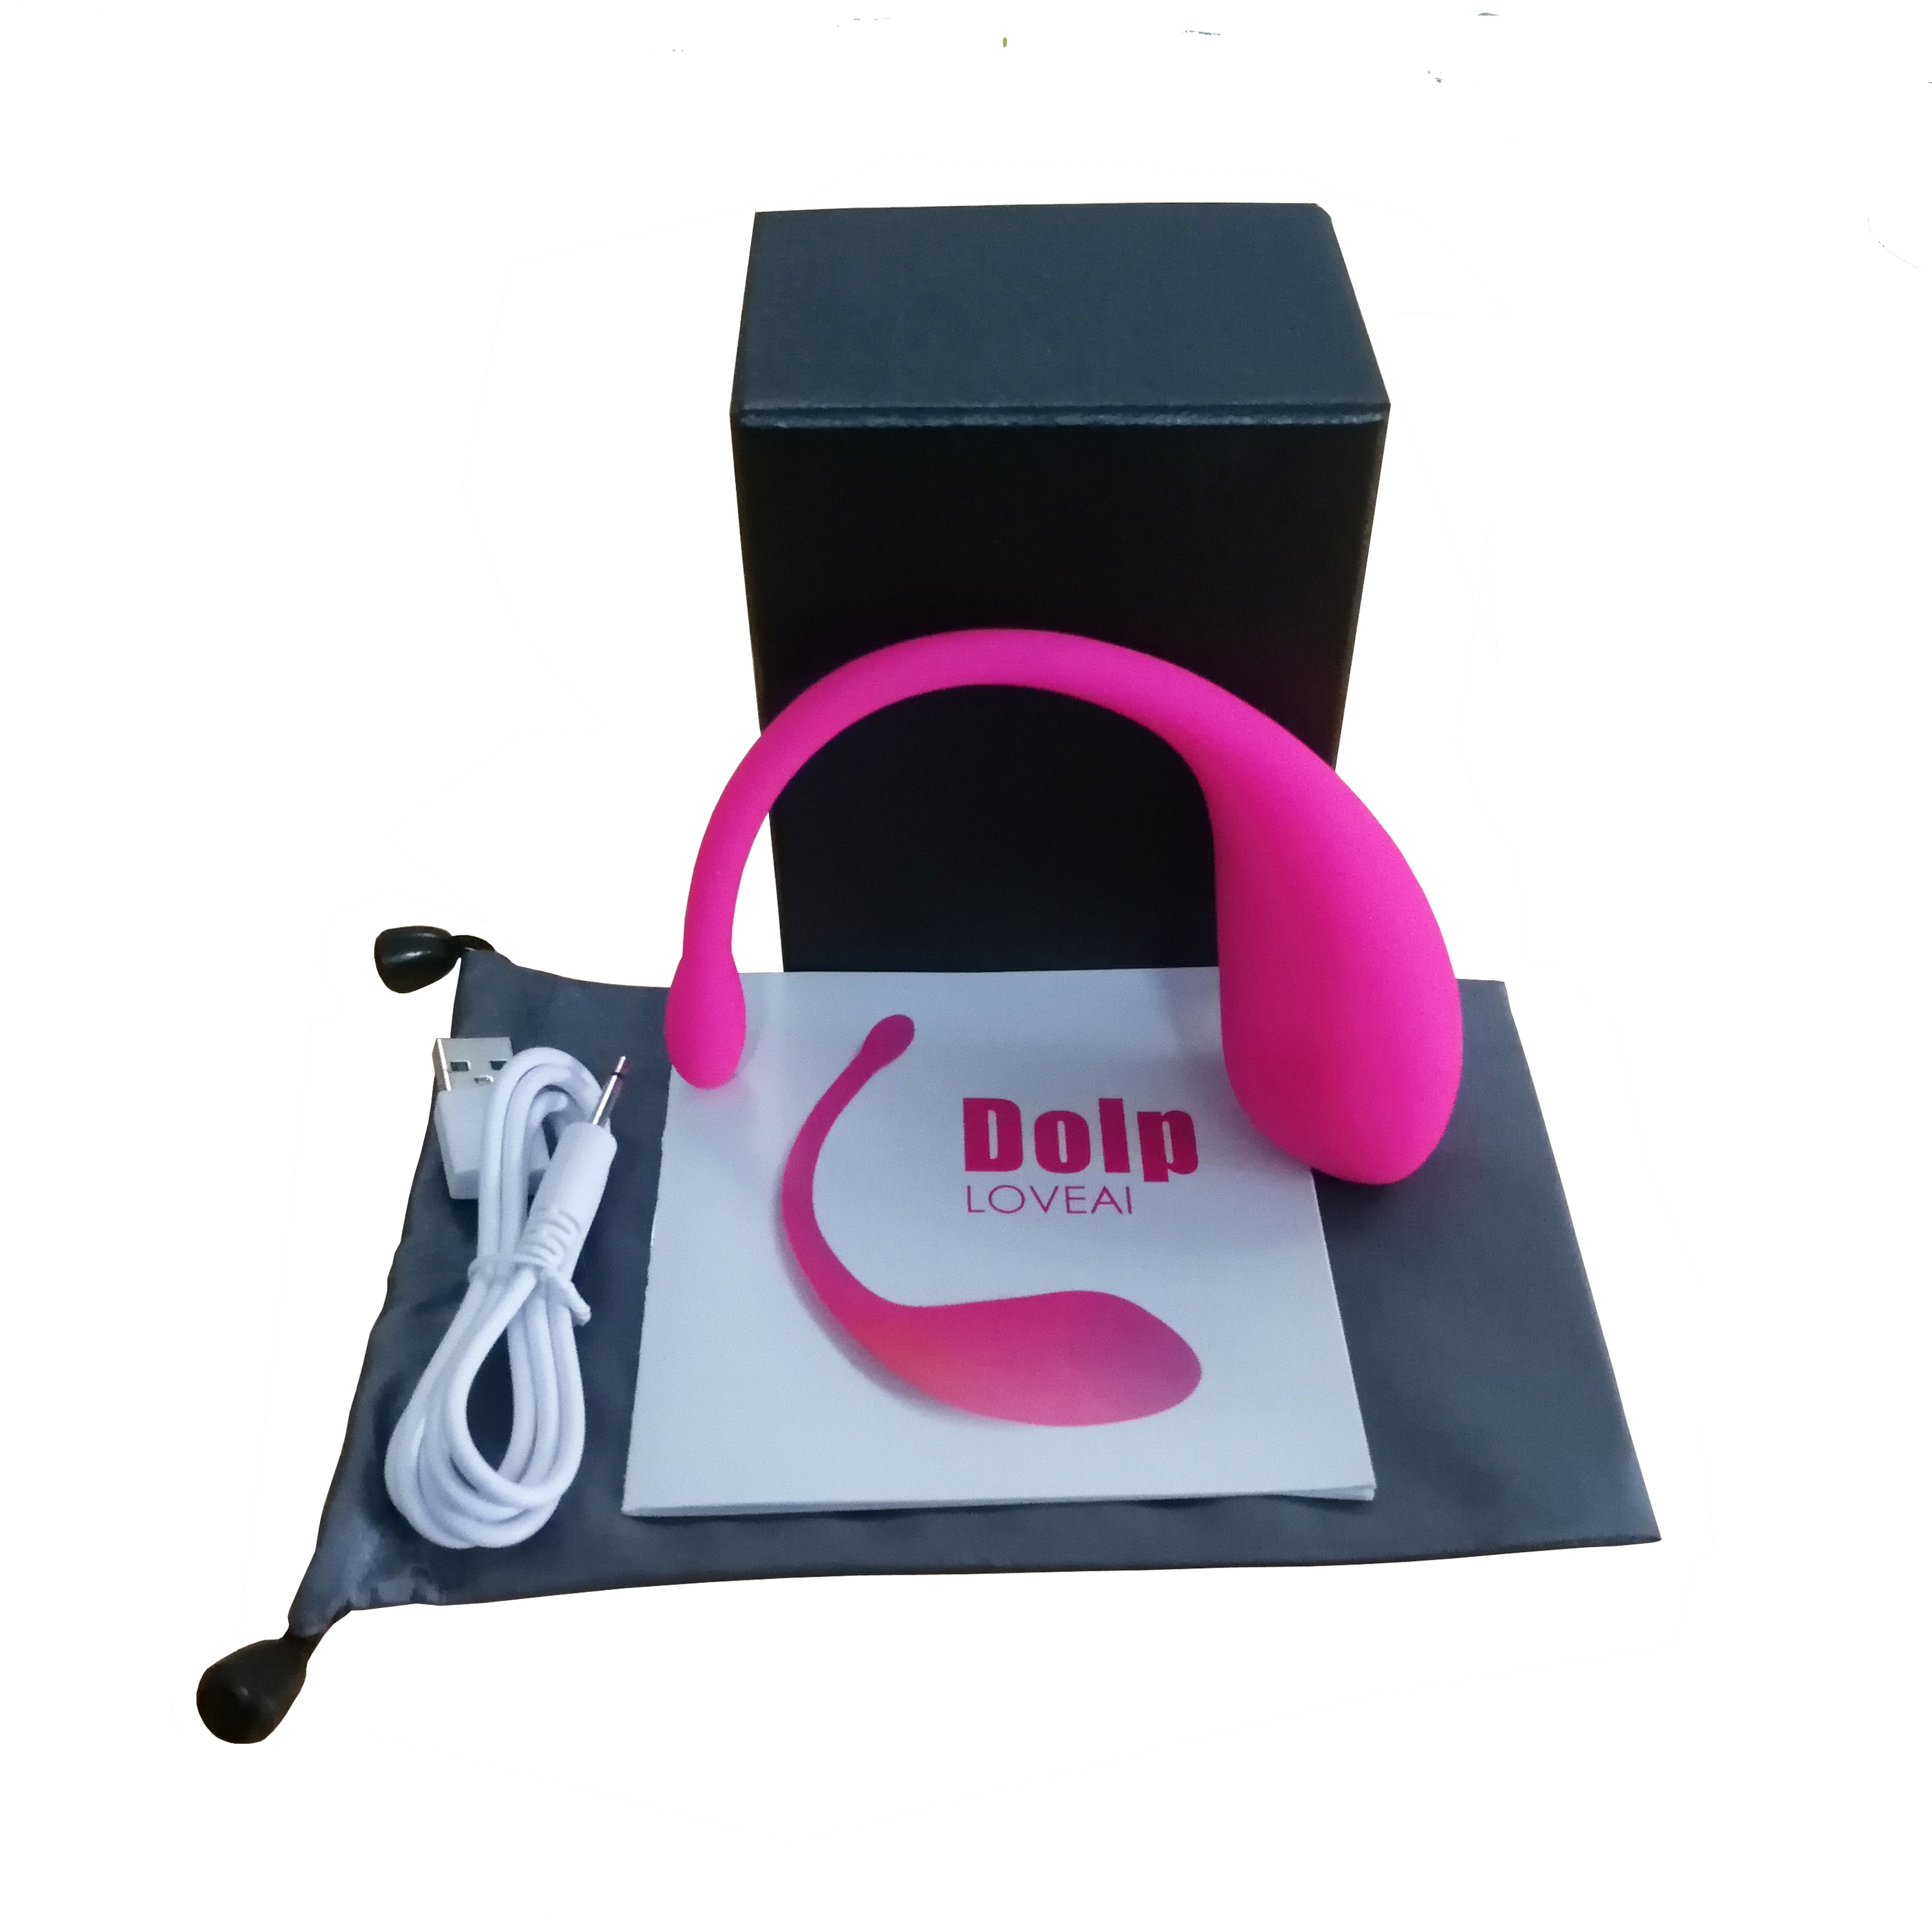 Dolp Wearable Massager, Vibes, App Smart Vibrator Device Bluetooth Remote Control Massaging Tool Waterproof Quiet Powerful enlarge